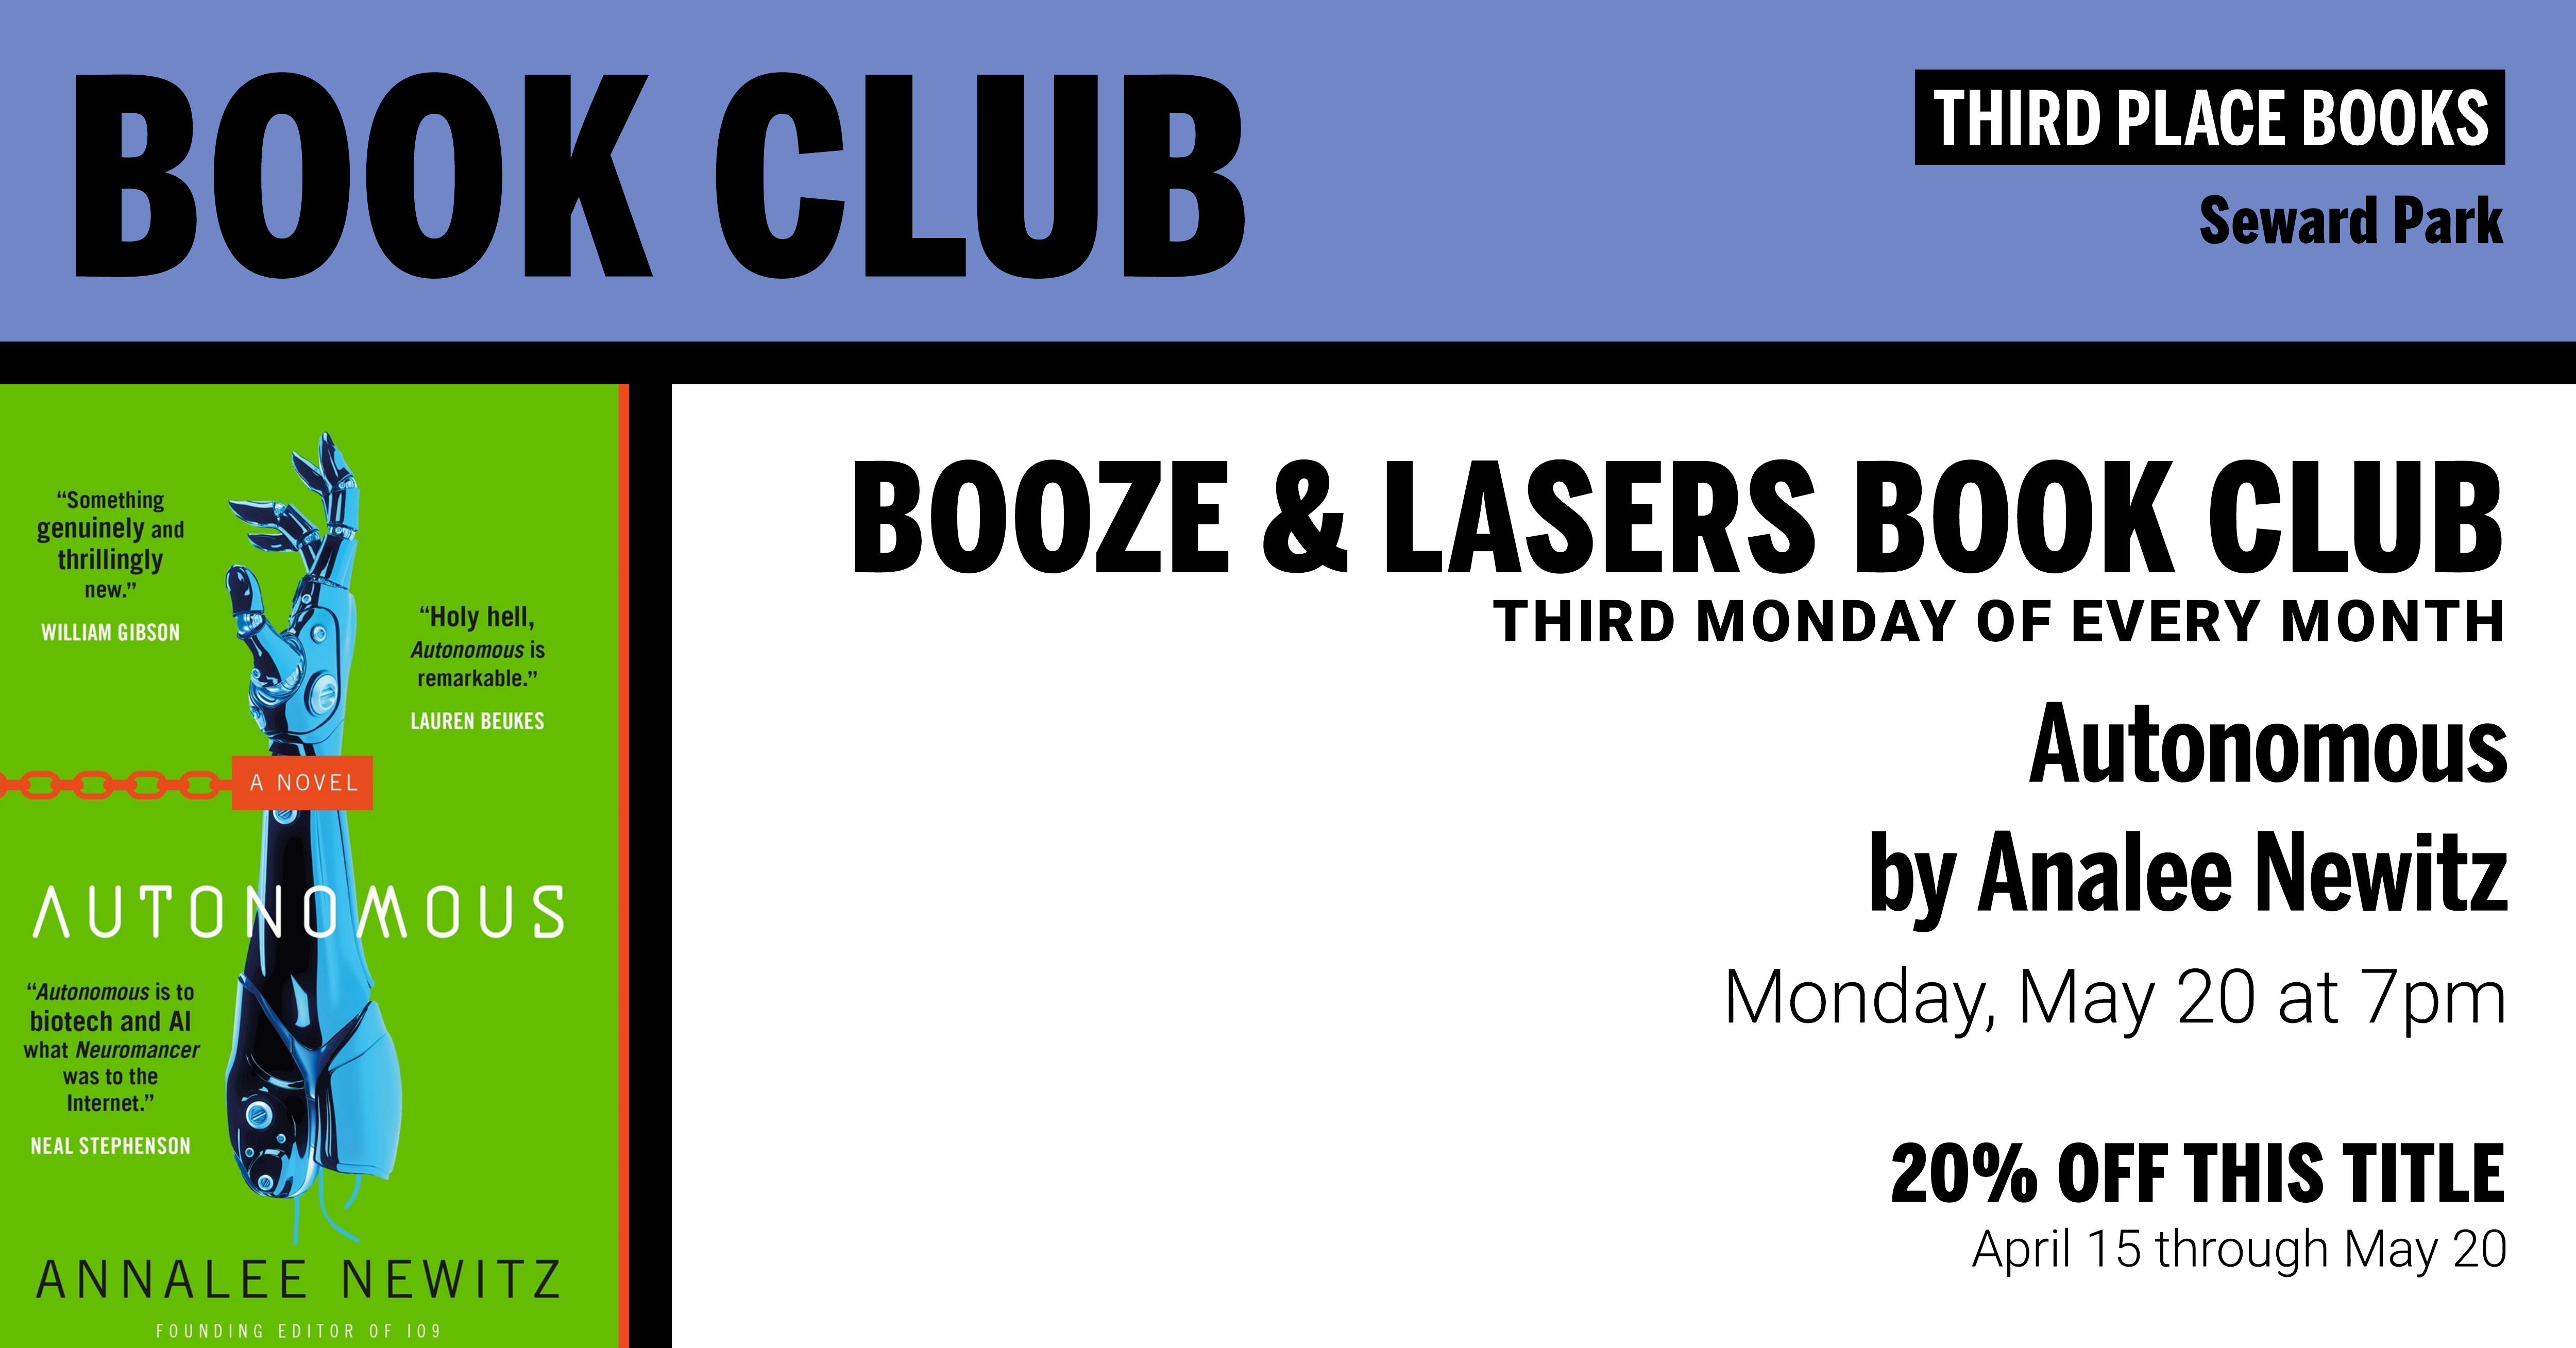 Booze & Lasers Book Club discussing Autonomous by Annalee Newitz on Monday, May 20 at 7pm